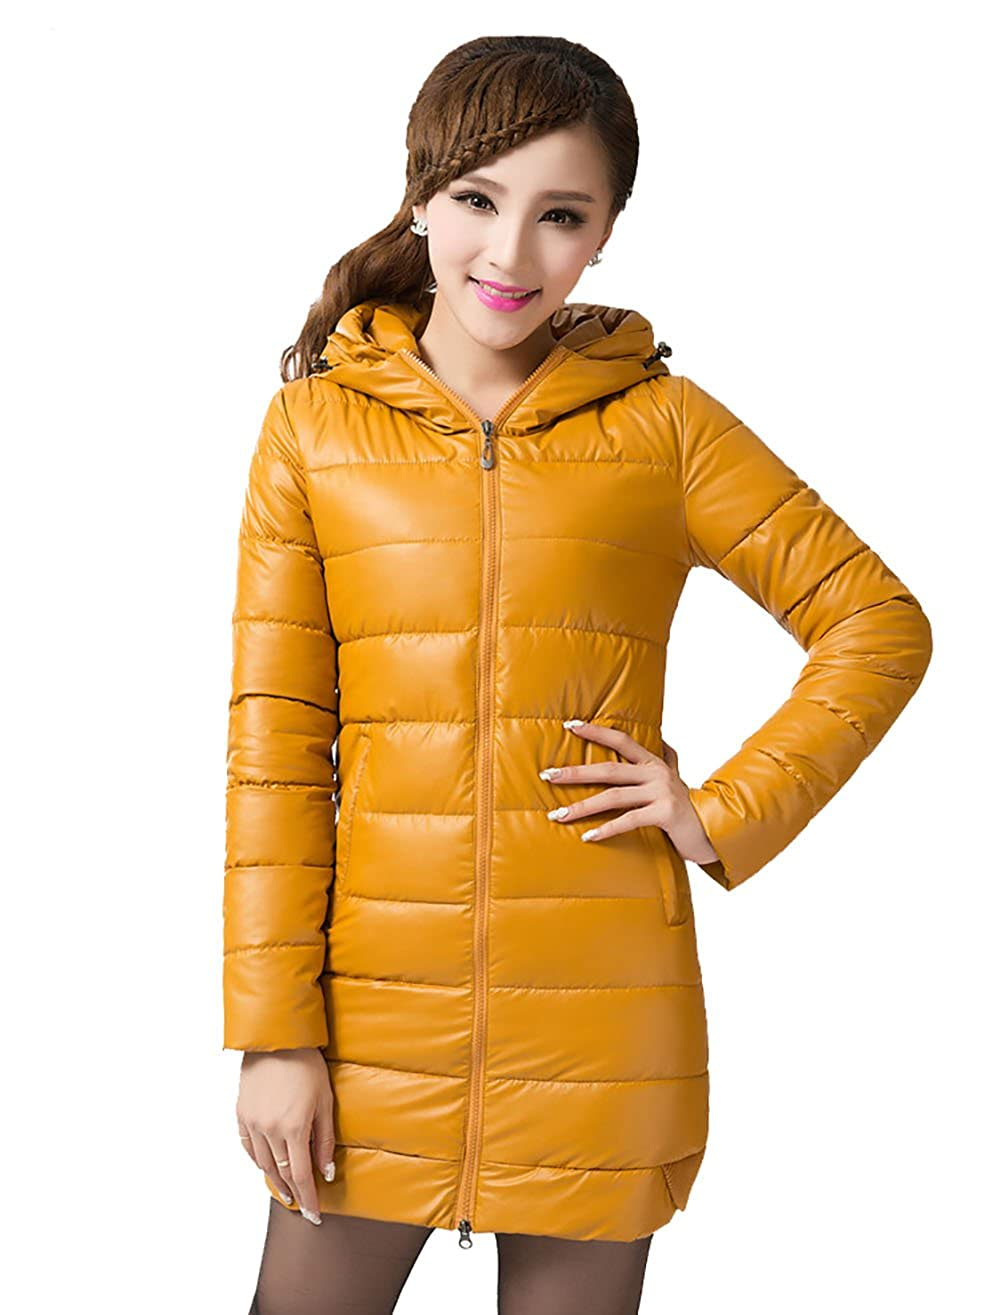 Comvison Winter Womens Thickened Down Jacket Warm Long Down Jackets Hooded Coat 6 Color Size